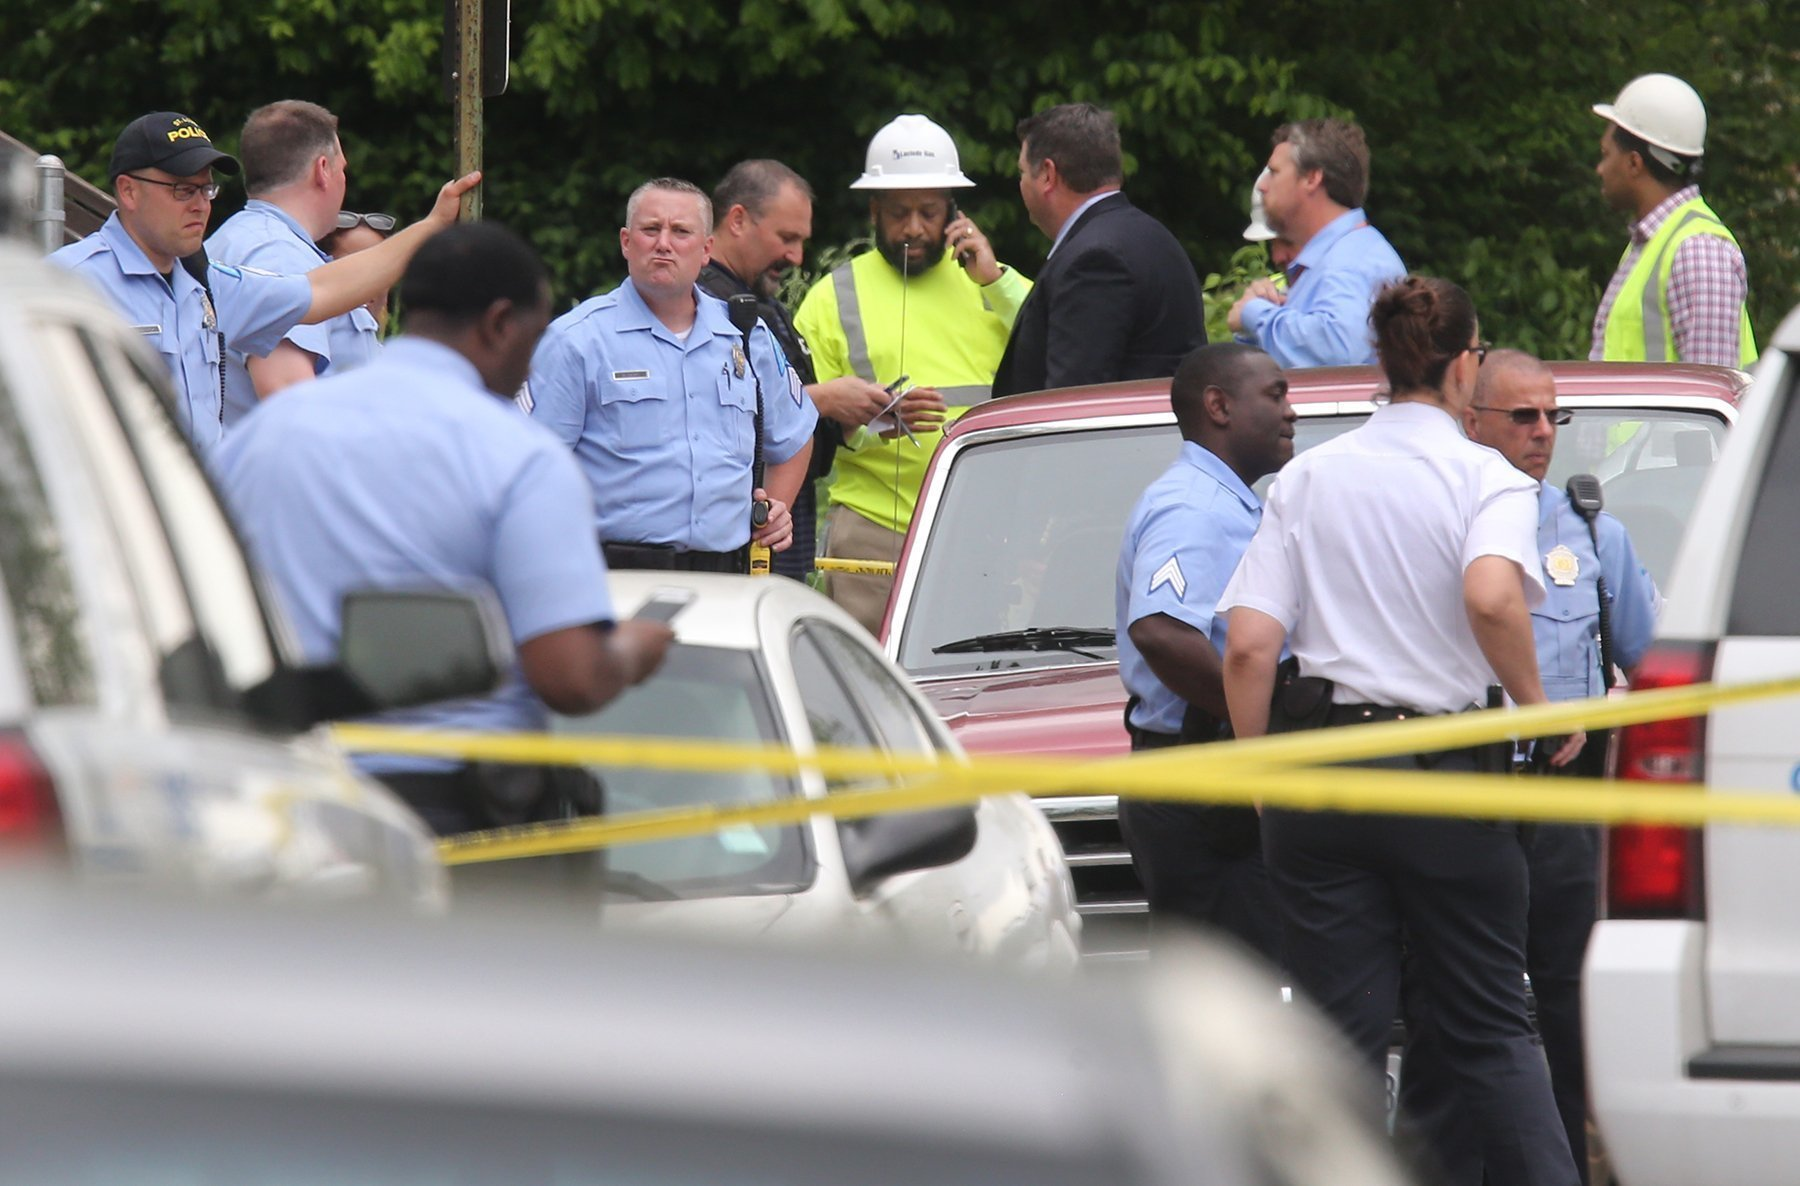 Utility Workers Killed-1 St. Louis police and Laclede Gas Co. workers congregate after a fatal shooting Thursday, April 20, 2017, in St. Louis. Manyika McCoy had just been talking to two Laclede Gas Co. workers just before they were killed by a man who walked up and started shooting. (J.B. Forbes/St. Louis Post-Dispatch via AP)